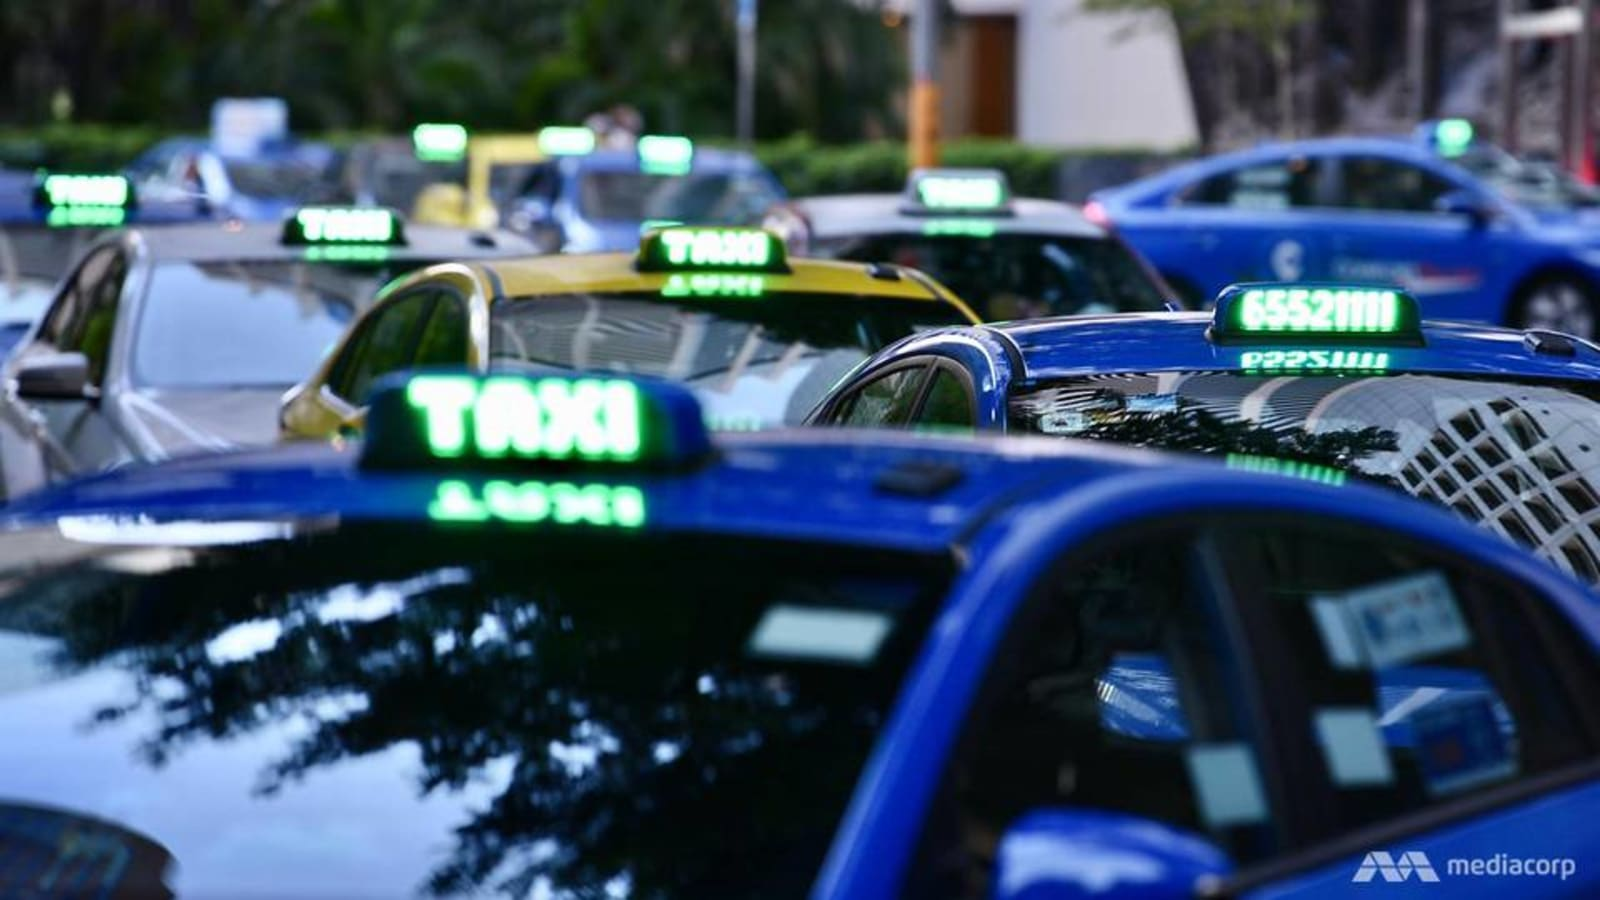 Passenger limits for taxis and private-hire cars as part of tighter COVID-19 measures